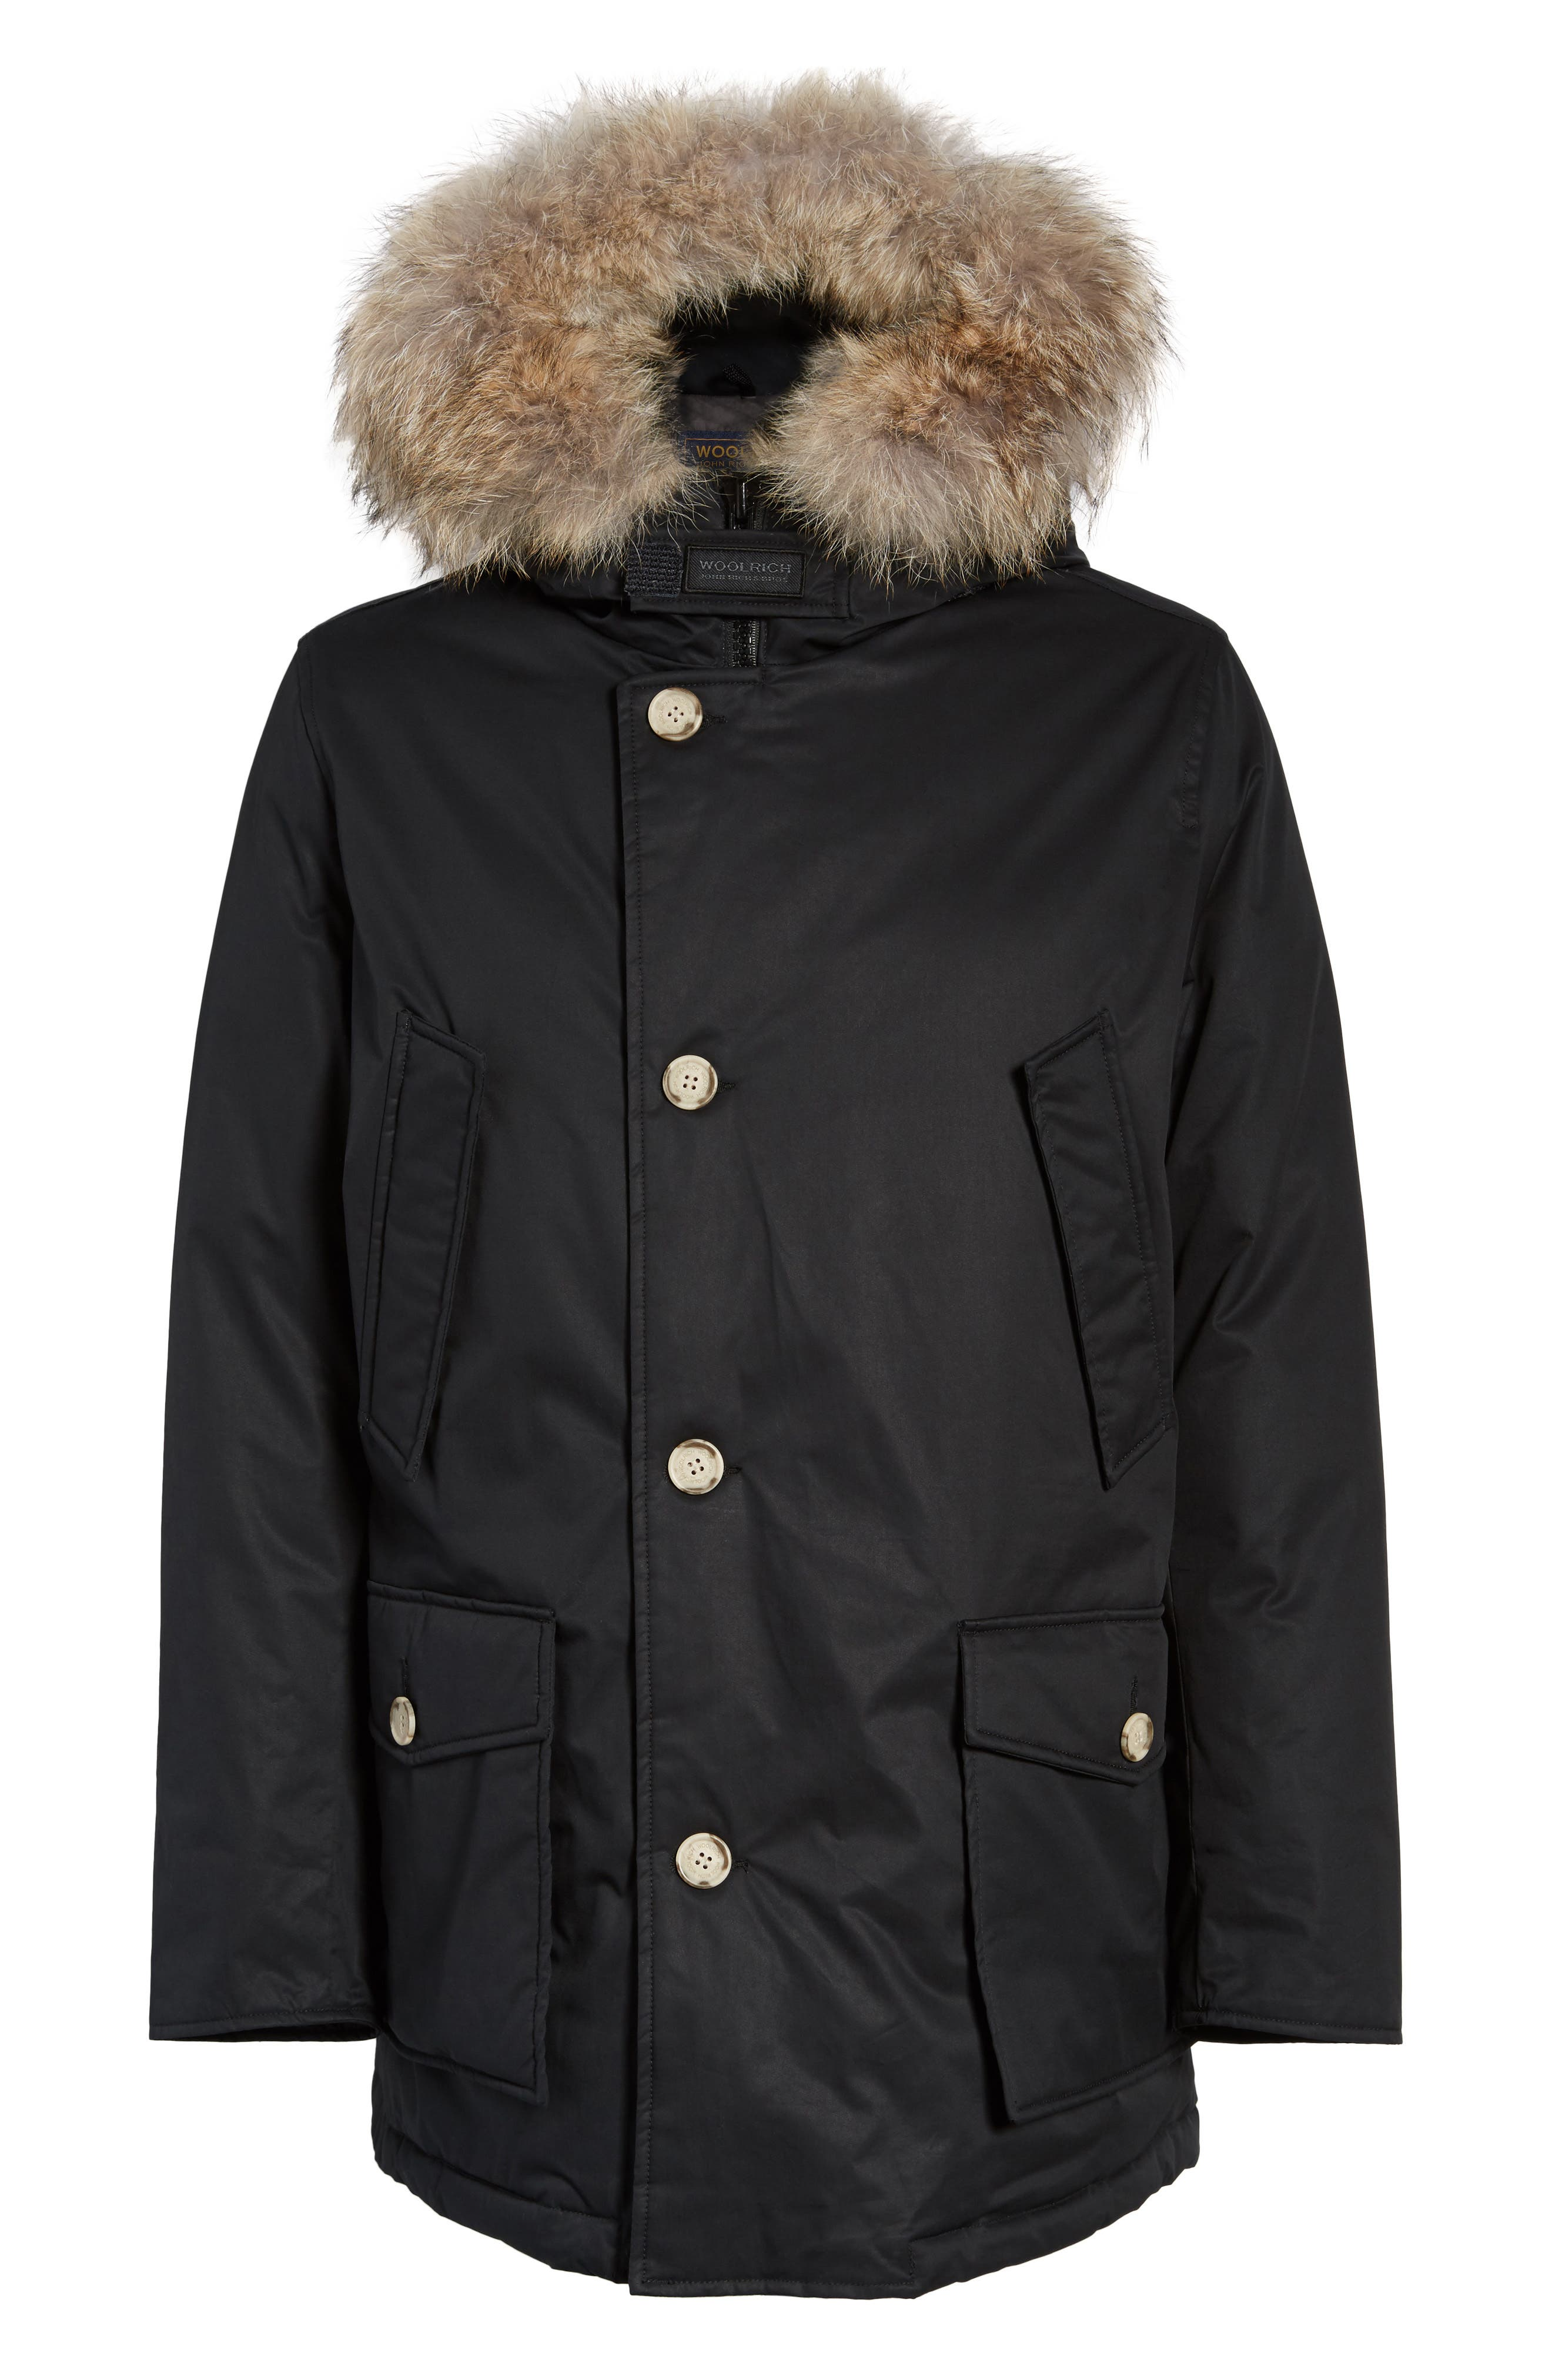 John Rich & Bros. Laminated Cotton Down Parka with Genuine Coyote Fur Trim,                             Alternate thumbnail 9, color,